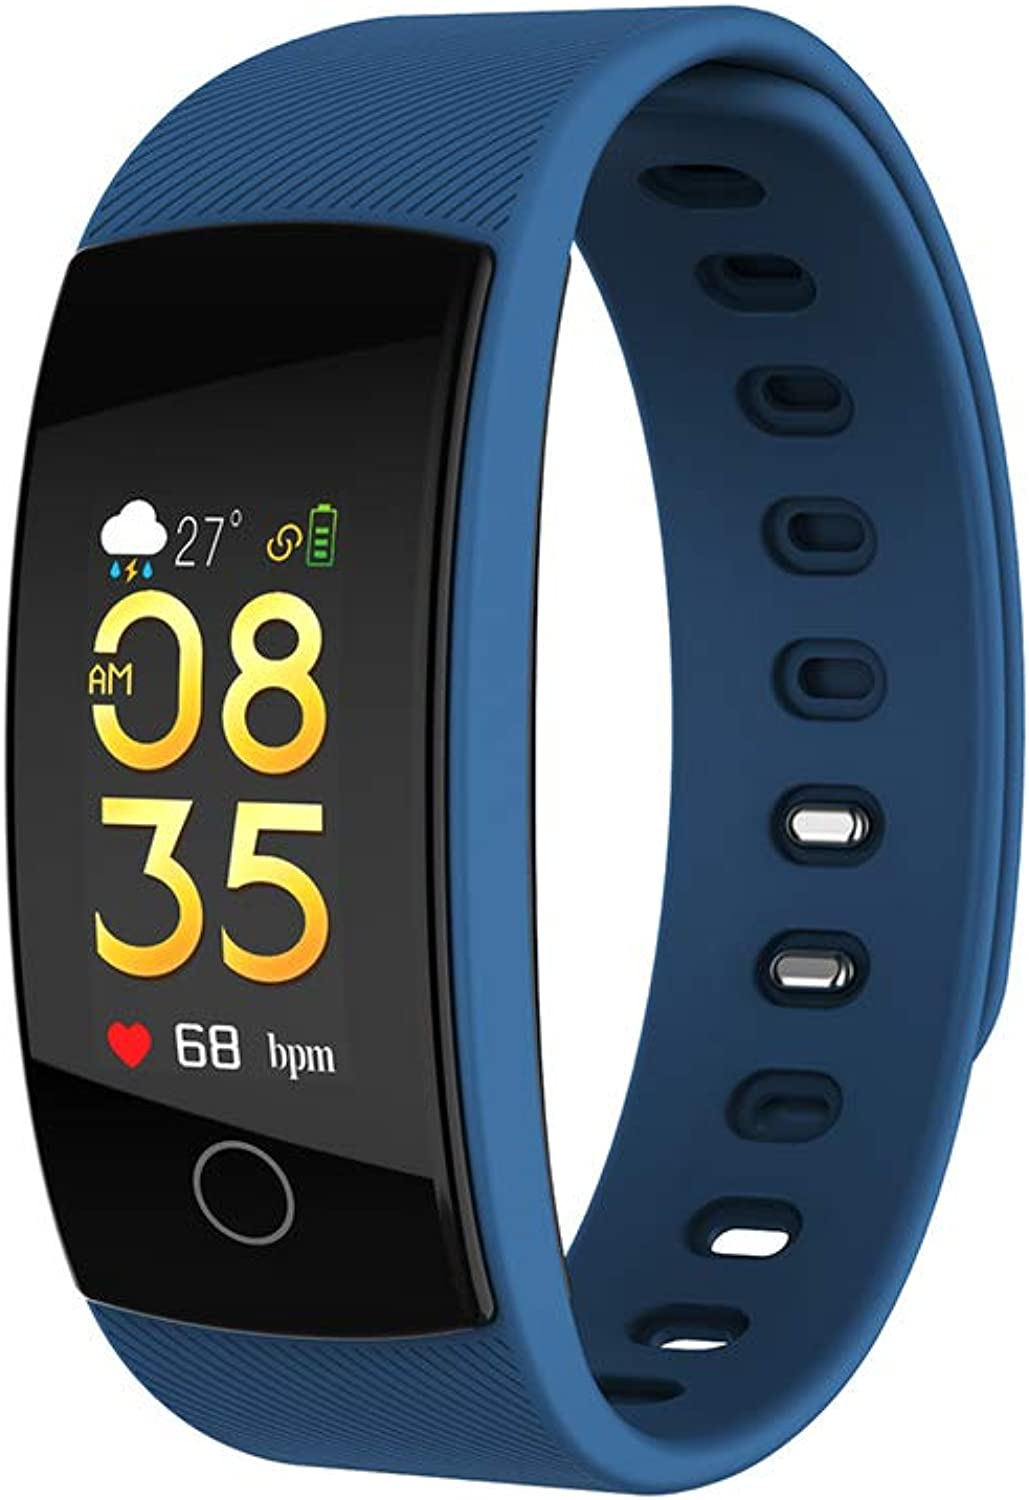 Fitness Tracker, with Heart Rate Monitor Waterproof RealTime Heart Rate Monitoring Sleep Monitor Step Counter Pedometer Call SMS Push for iOS Android Phone Myhao